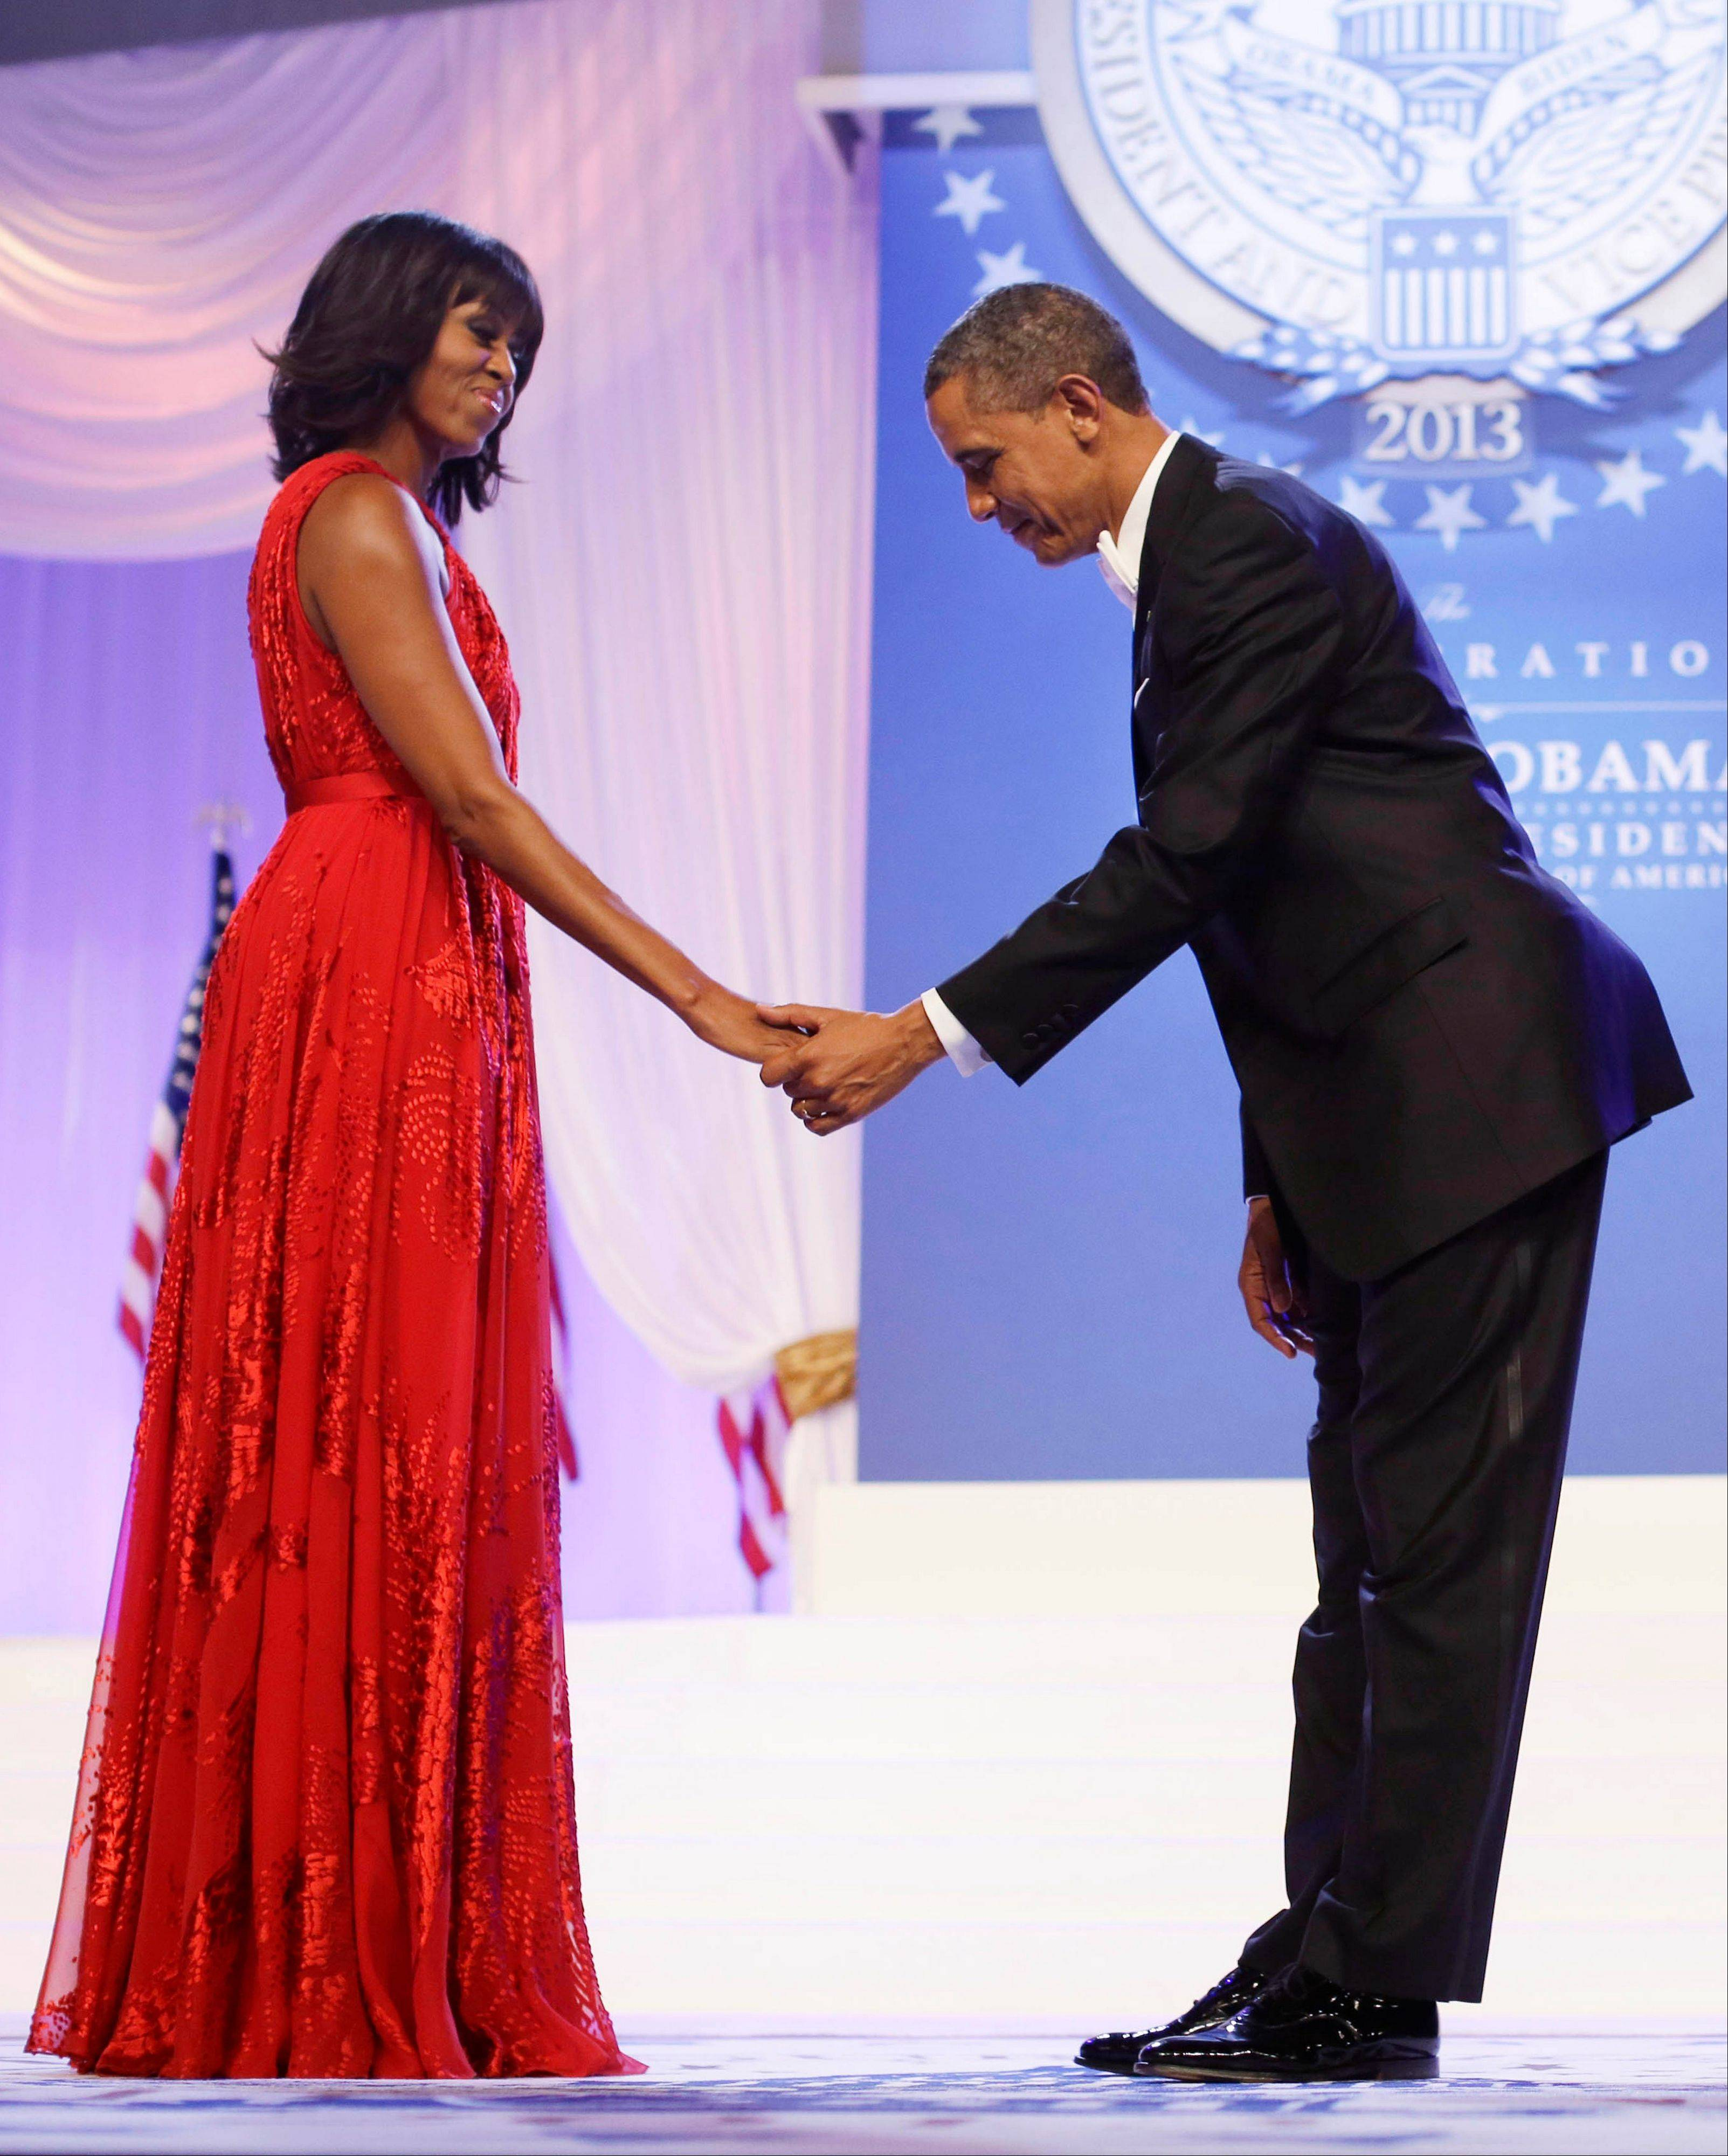 President Barack Obama bows as he and first lady Michelle Obama, wearing a ruby-colored chiffon and velvet Jason Wu gown, gets ready to dance at the Inaugural Ball at the Washington Convention Center during the 57th Presidential Inauguration in Washington. Michelle Obama's fashion is making history again, at least for the next year, as her second inaugural gown will be displayed at the Smithsonian Institution.